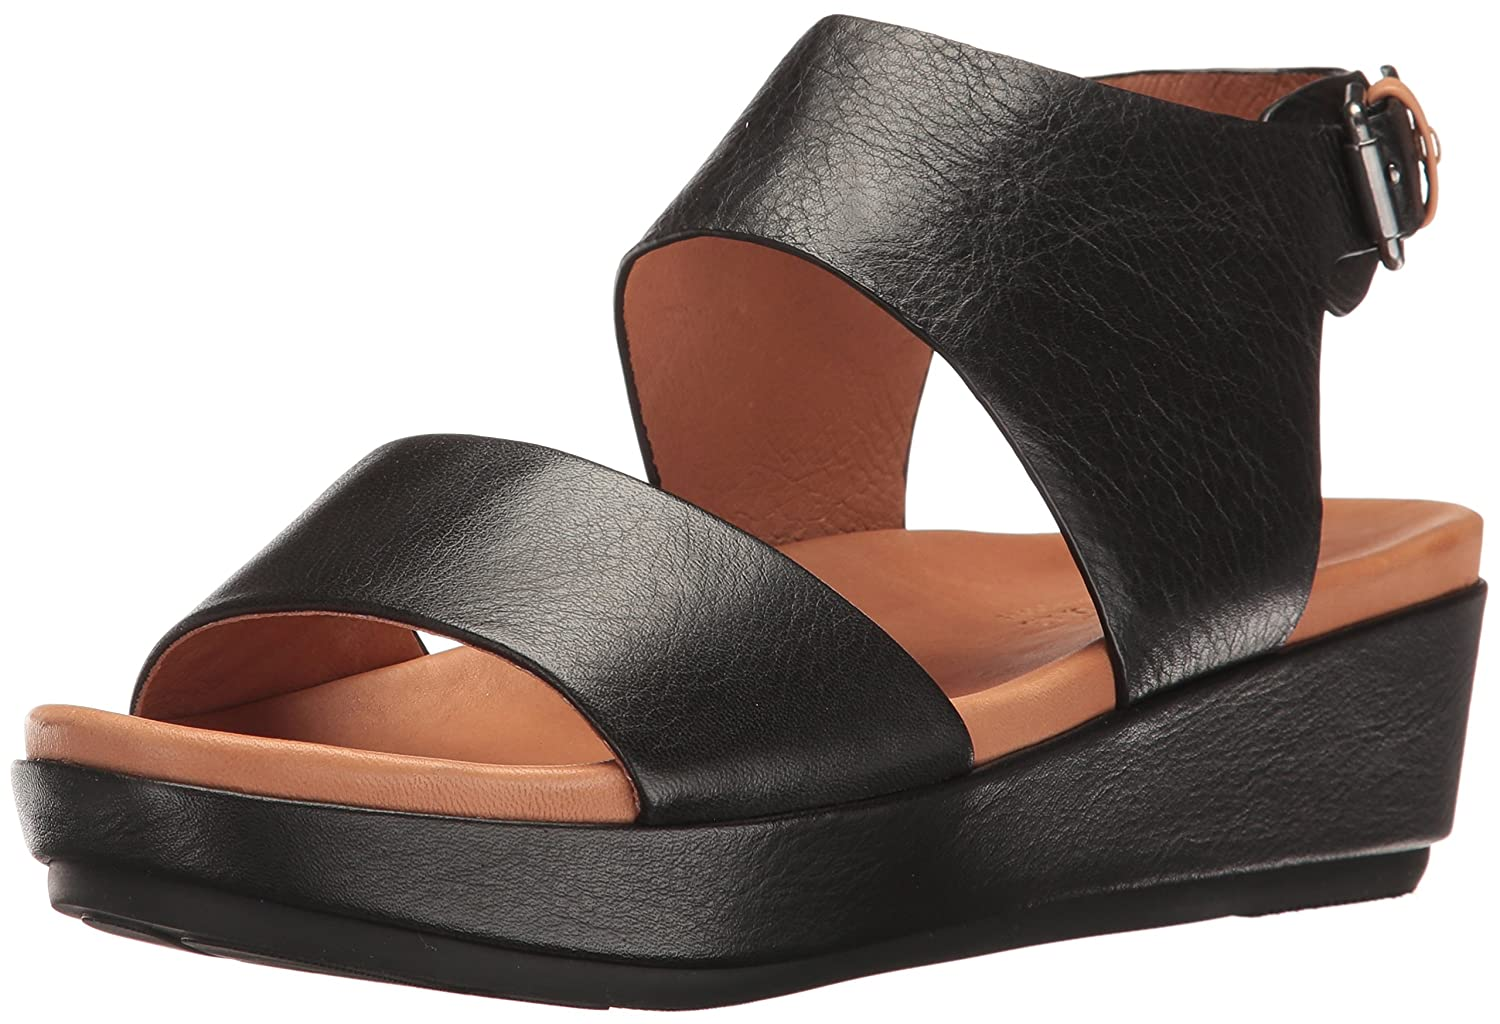 Gentle Souls by Kenneth Cole Women's Lori Platform Sandal B01L9M1LTG 7.5 M US|Black